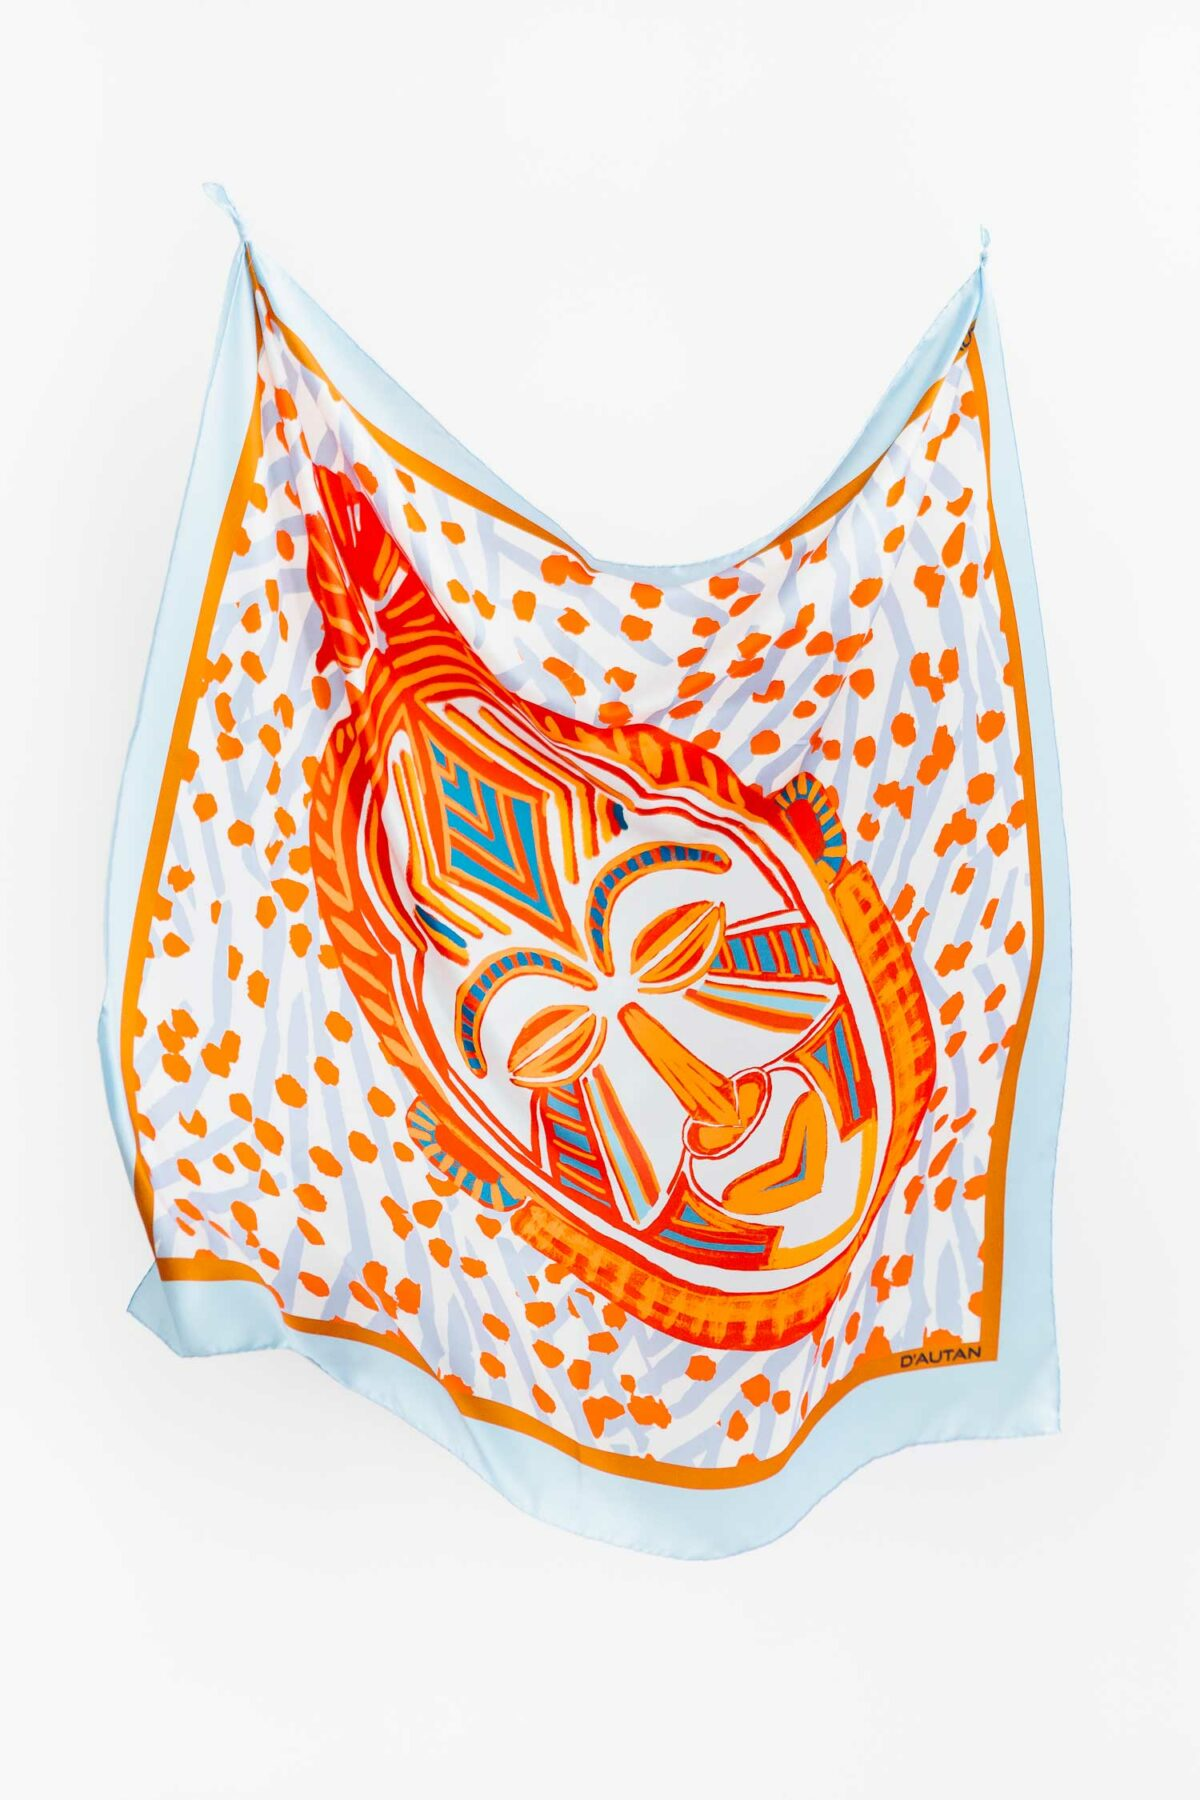 blue and orange scarf with a mask on it